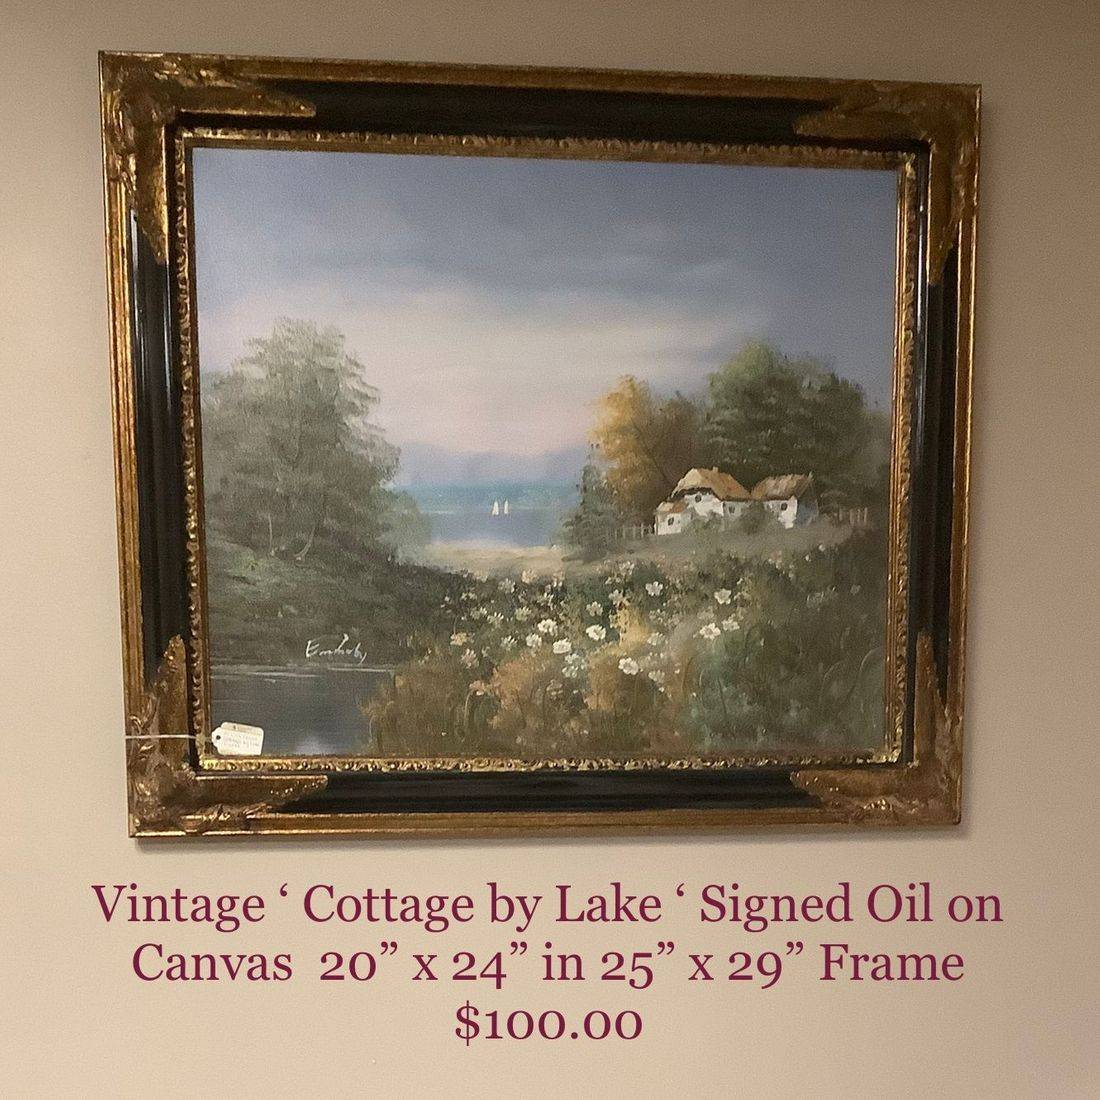 Vin. 'Cottage by Lake'  Signed Oil on Canvas  $100.00